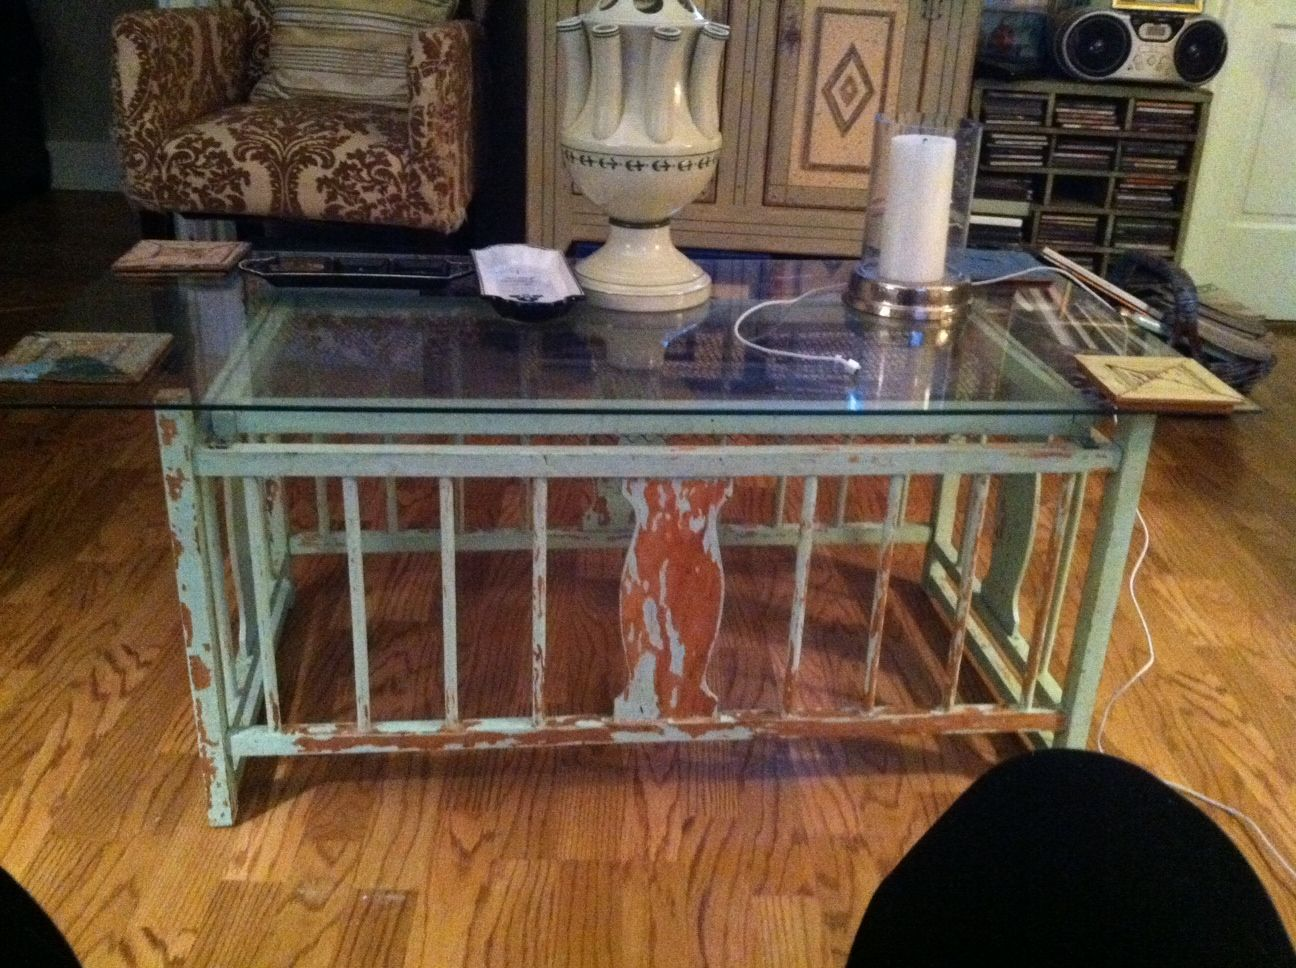 One of the very first DIY projects I did...legs cut off the vintage crib turned upside down with a piece of glass on top, instant coffee table--this has been with me for over 10 years!